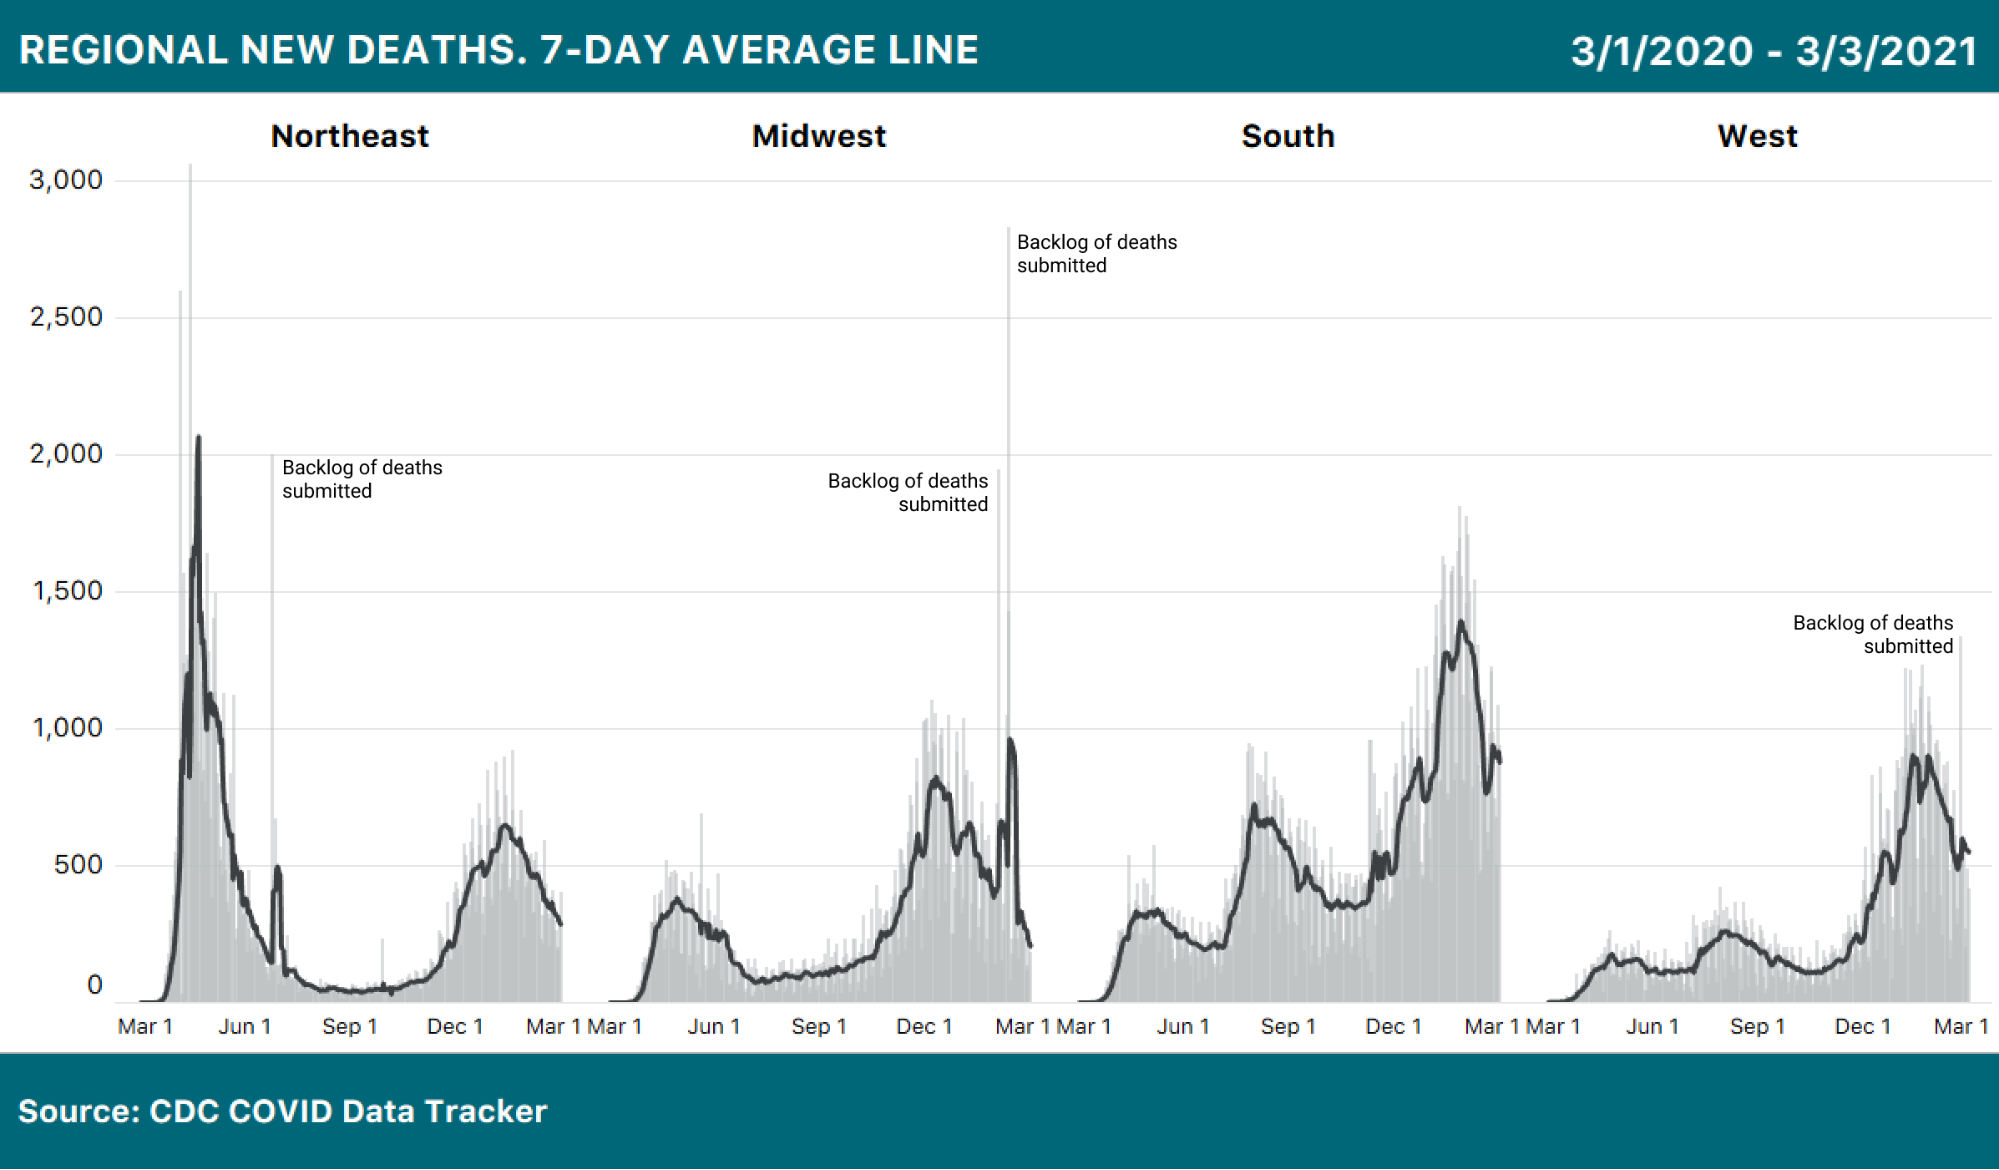 4 daily bar charts with 7-day average line overlaid showing COVID-19 deaths in each major US region. Deaths are trending down in all regions (with some wobbles in the South due to inconsistent reporting).